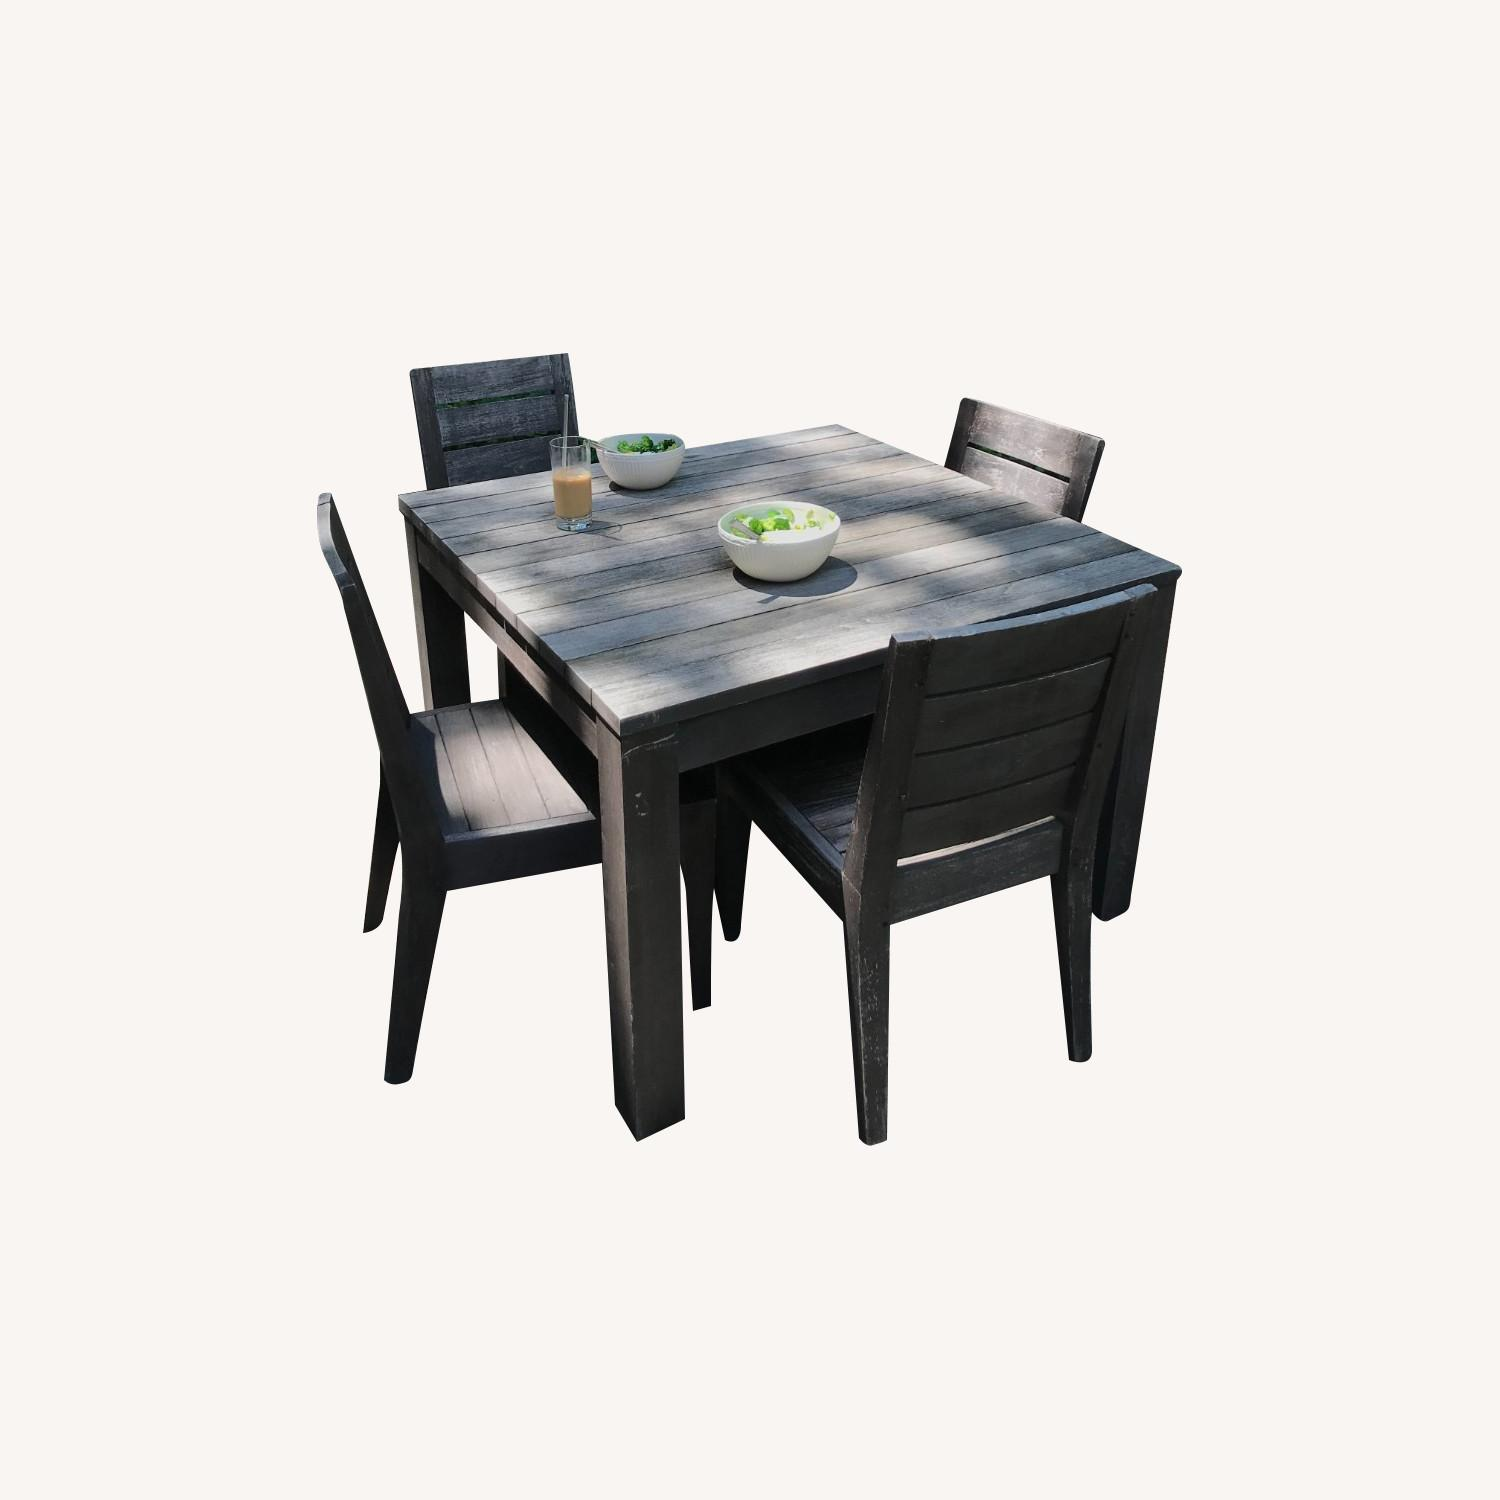 Restoration Hardware Teak Table and Side Chairs - image-0